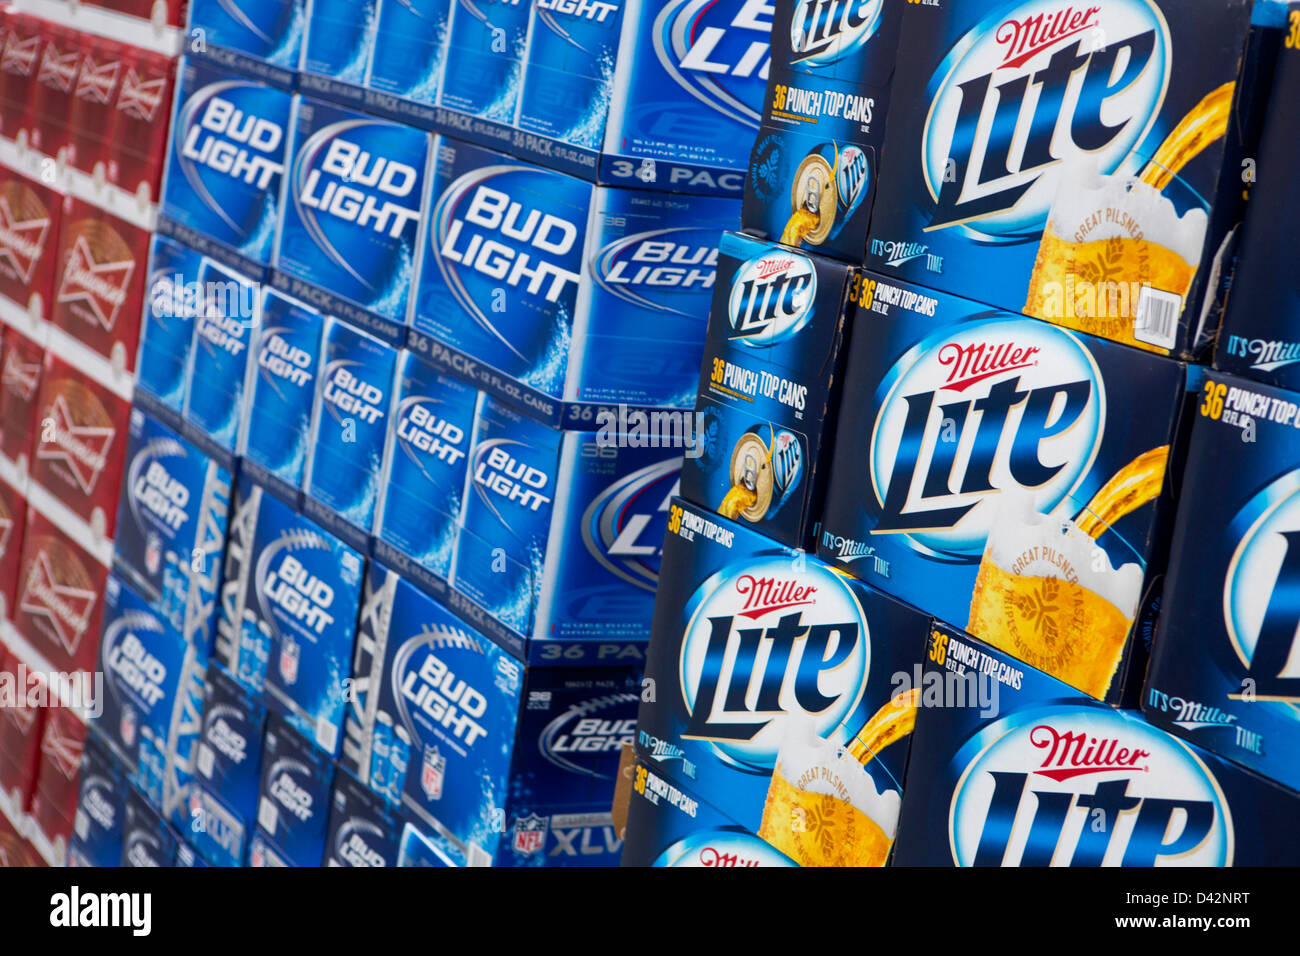 Perfect Budweiser, Bud Light And Miller Lite Beer On Display At A Costco Wholesale  Warehouse Club Images